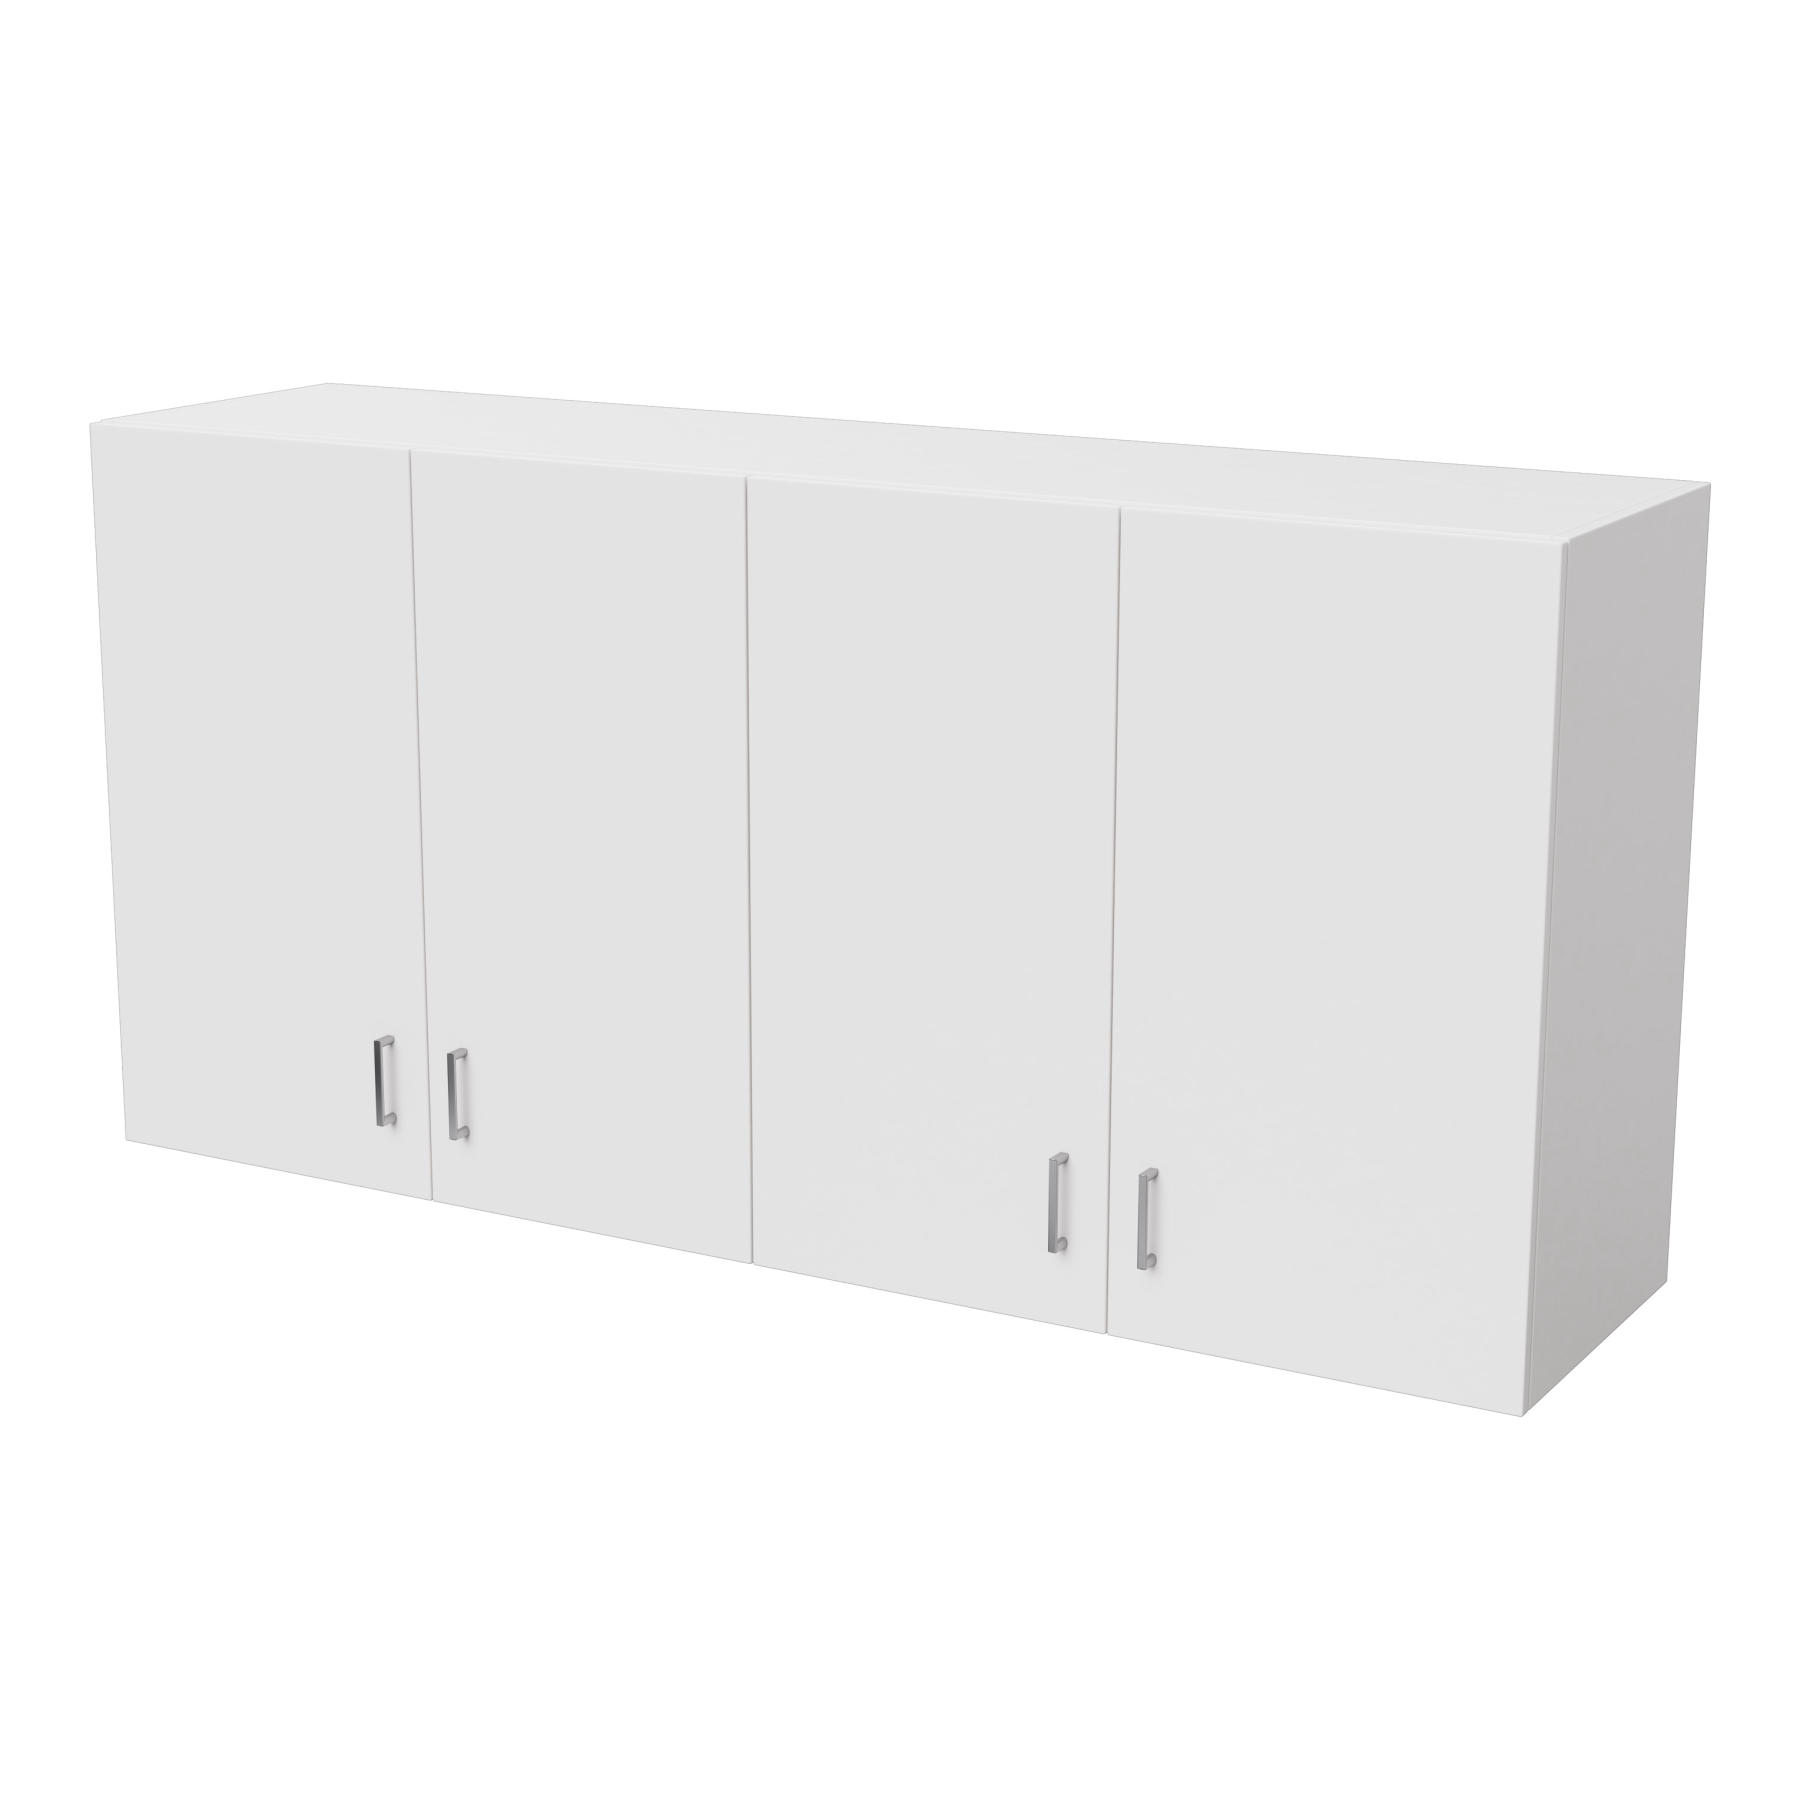 Lami Wall Mounted Storage – Hinged Door